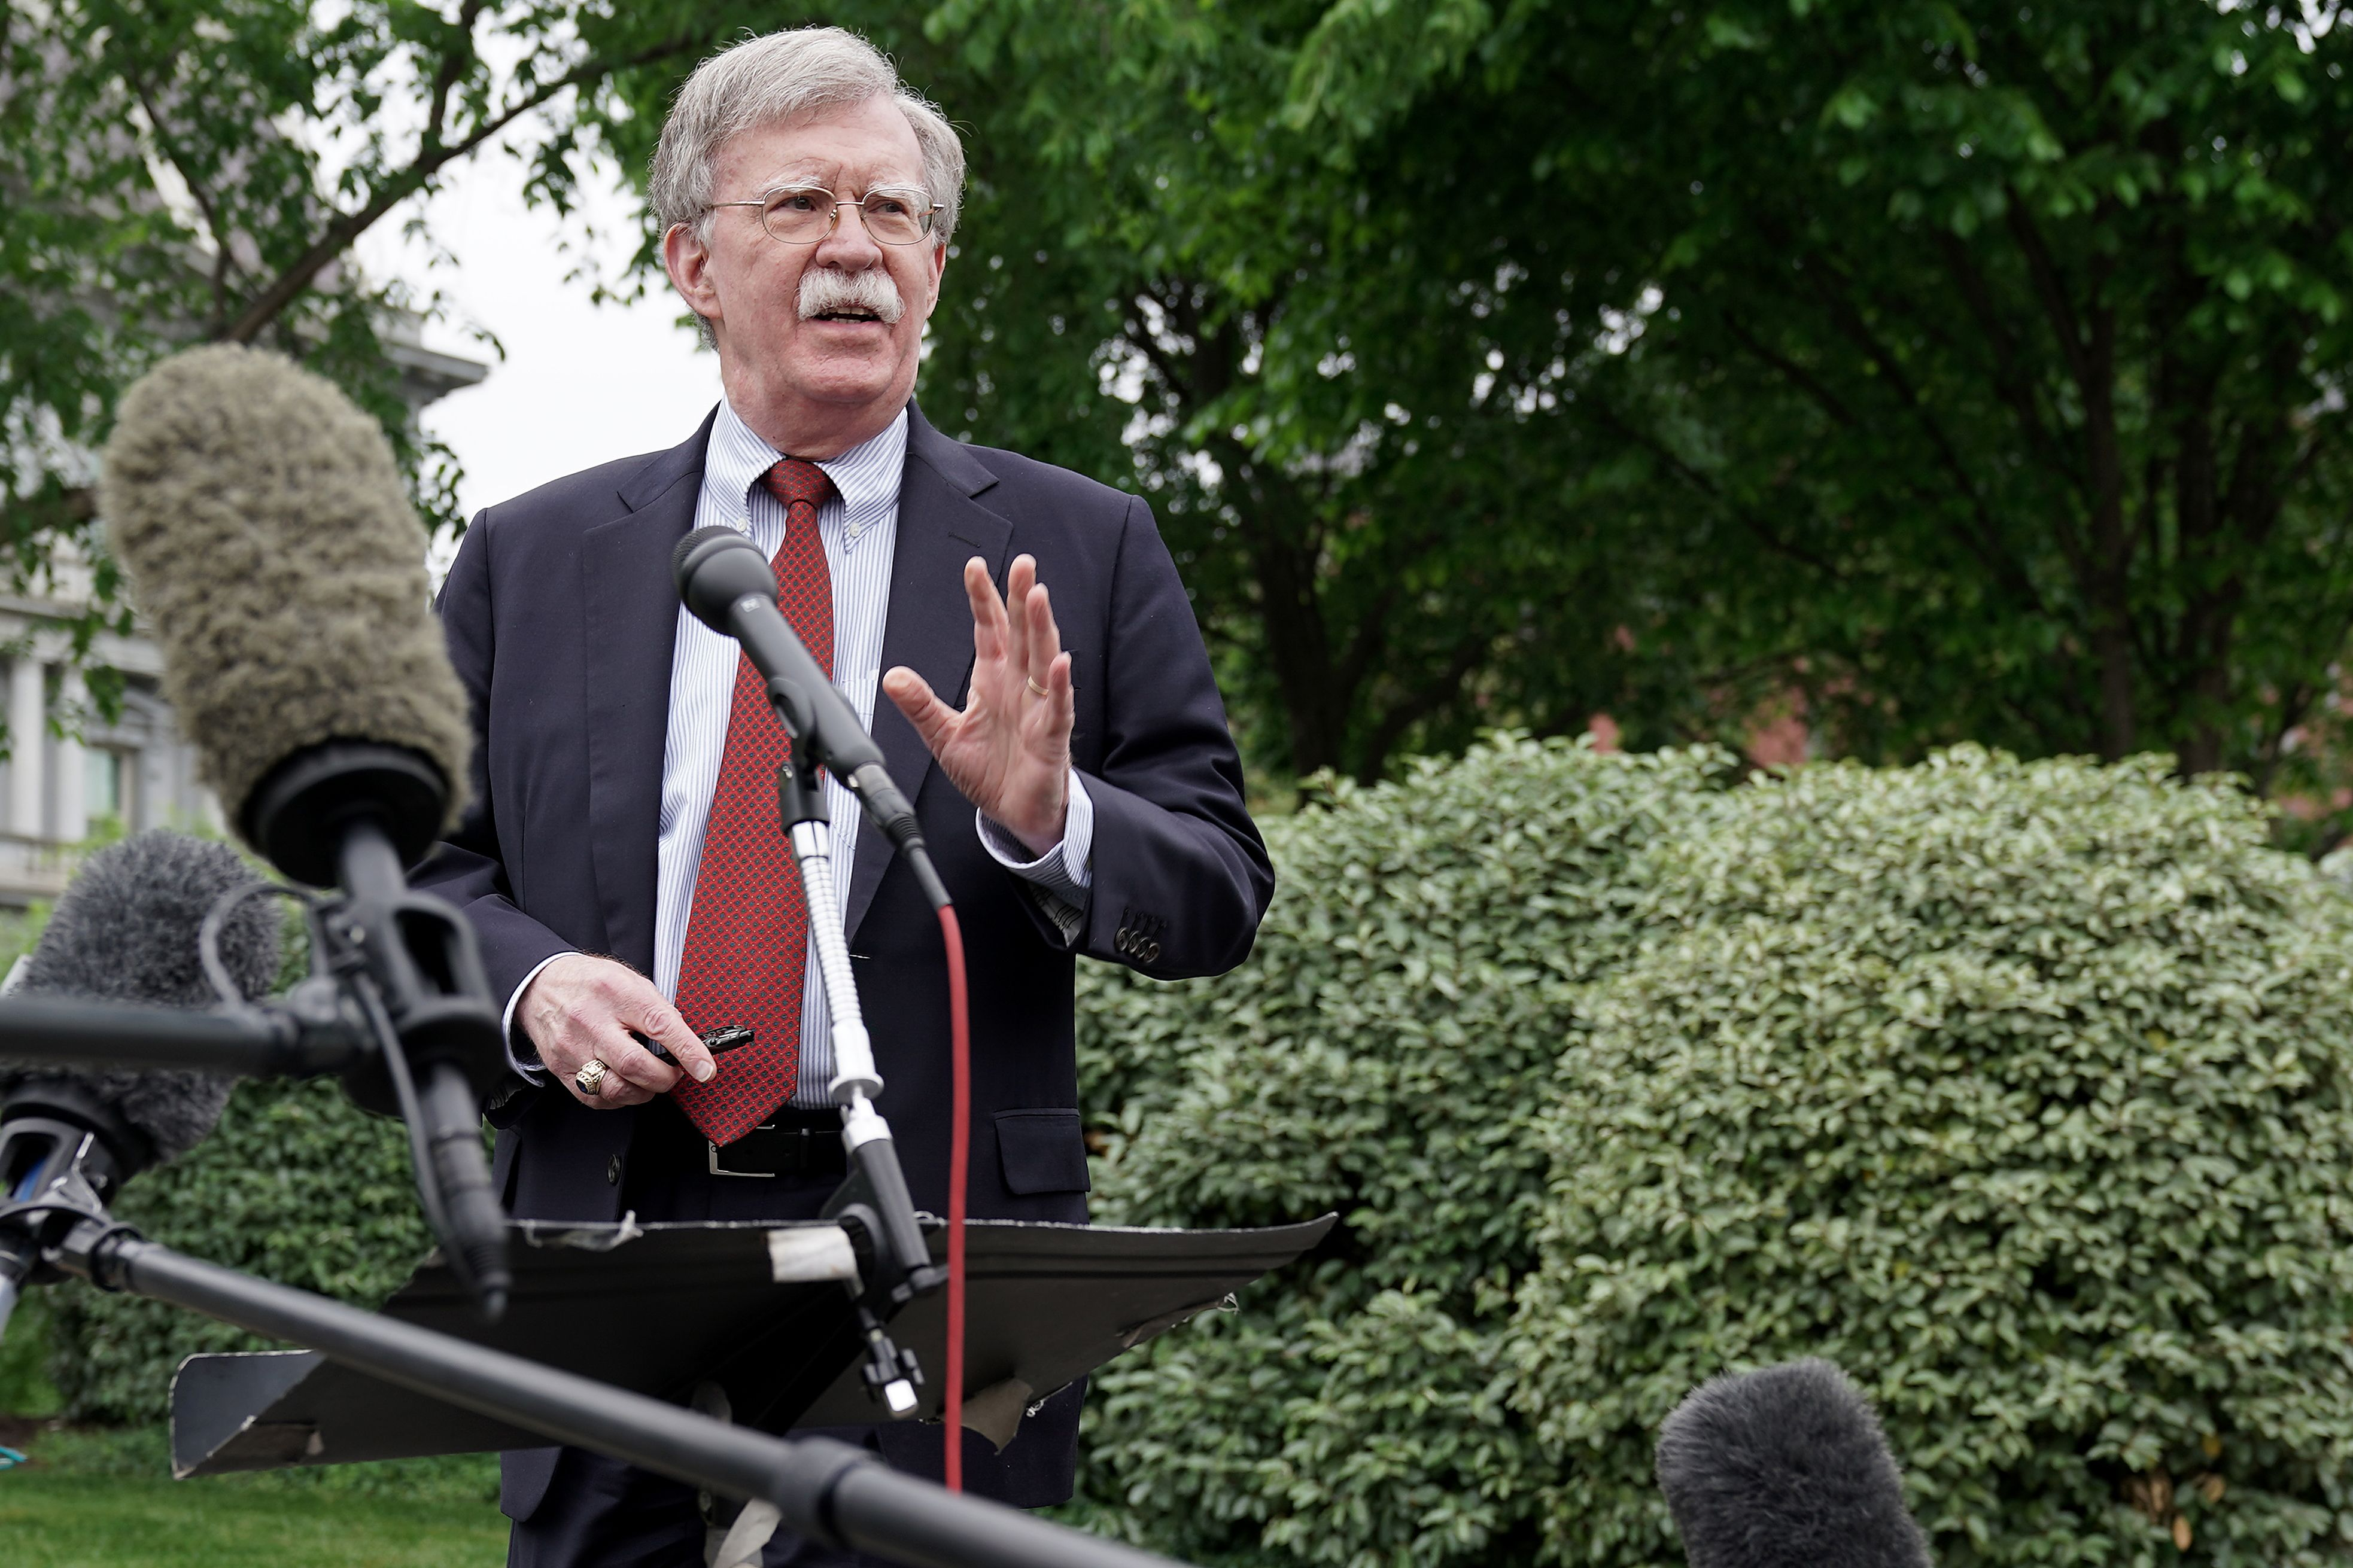 Iran tension: Bolton suggests Tehran is seeking nuclear weapons - Axios